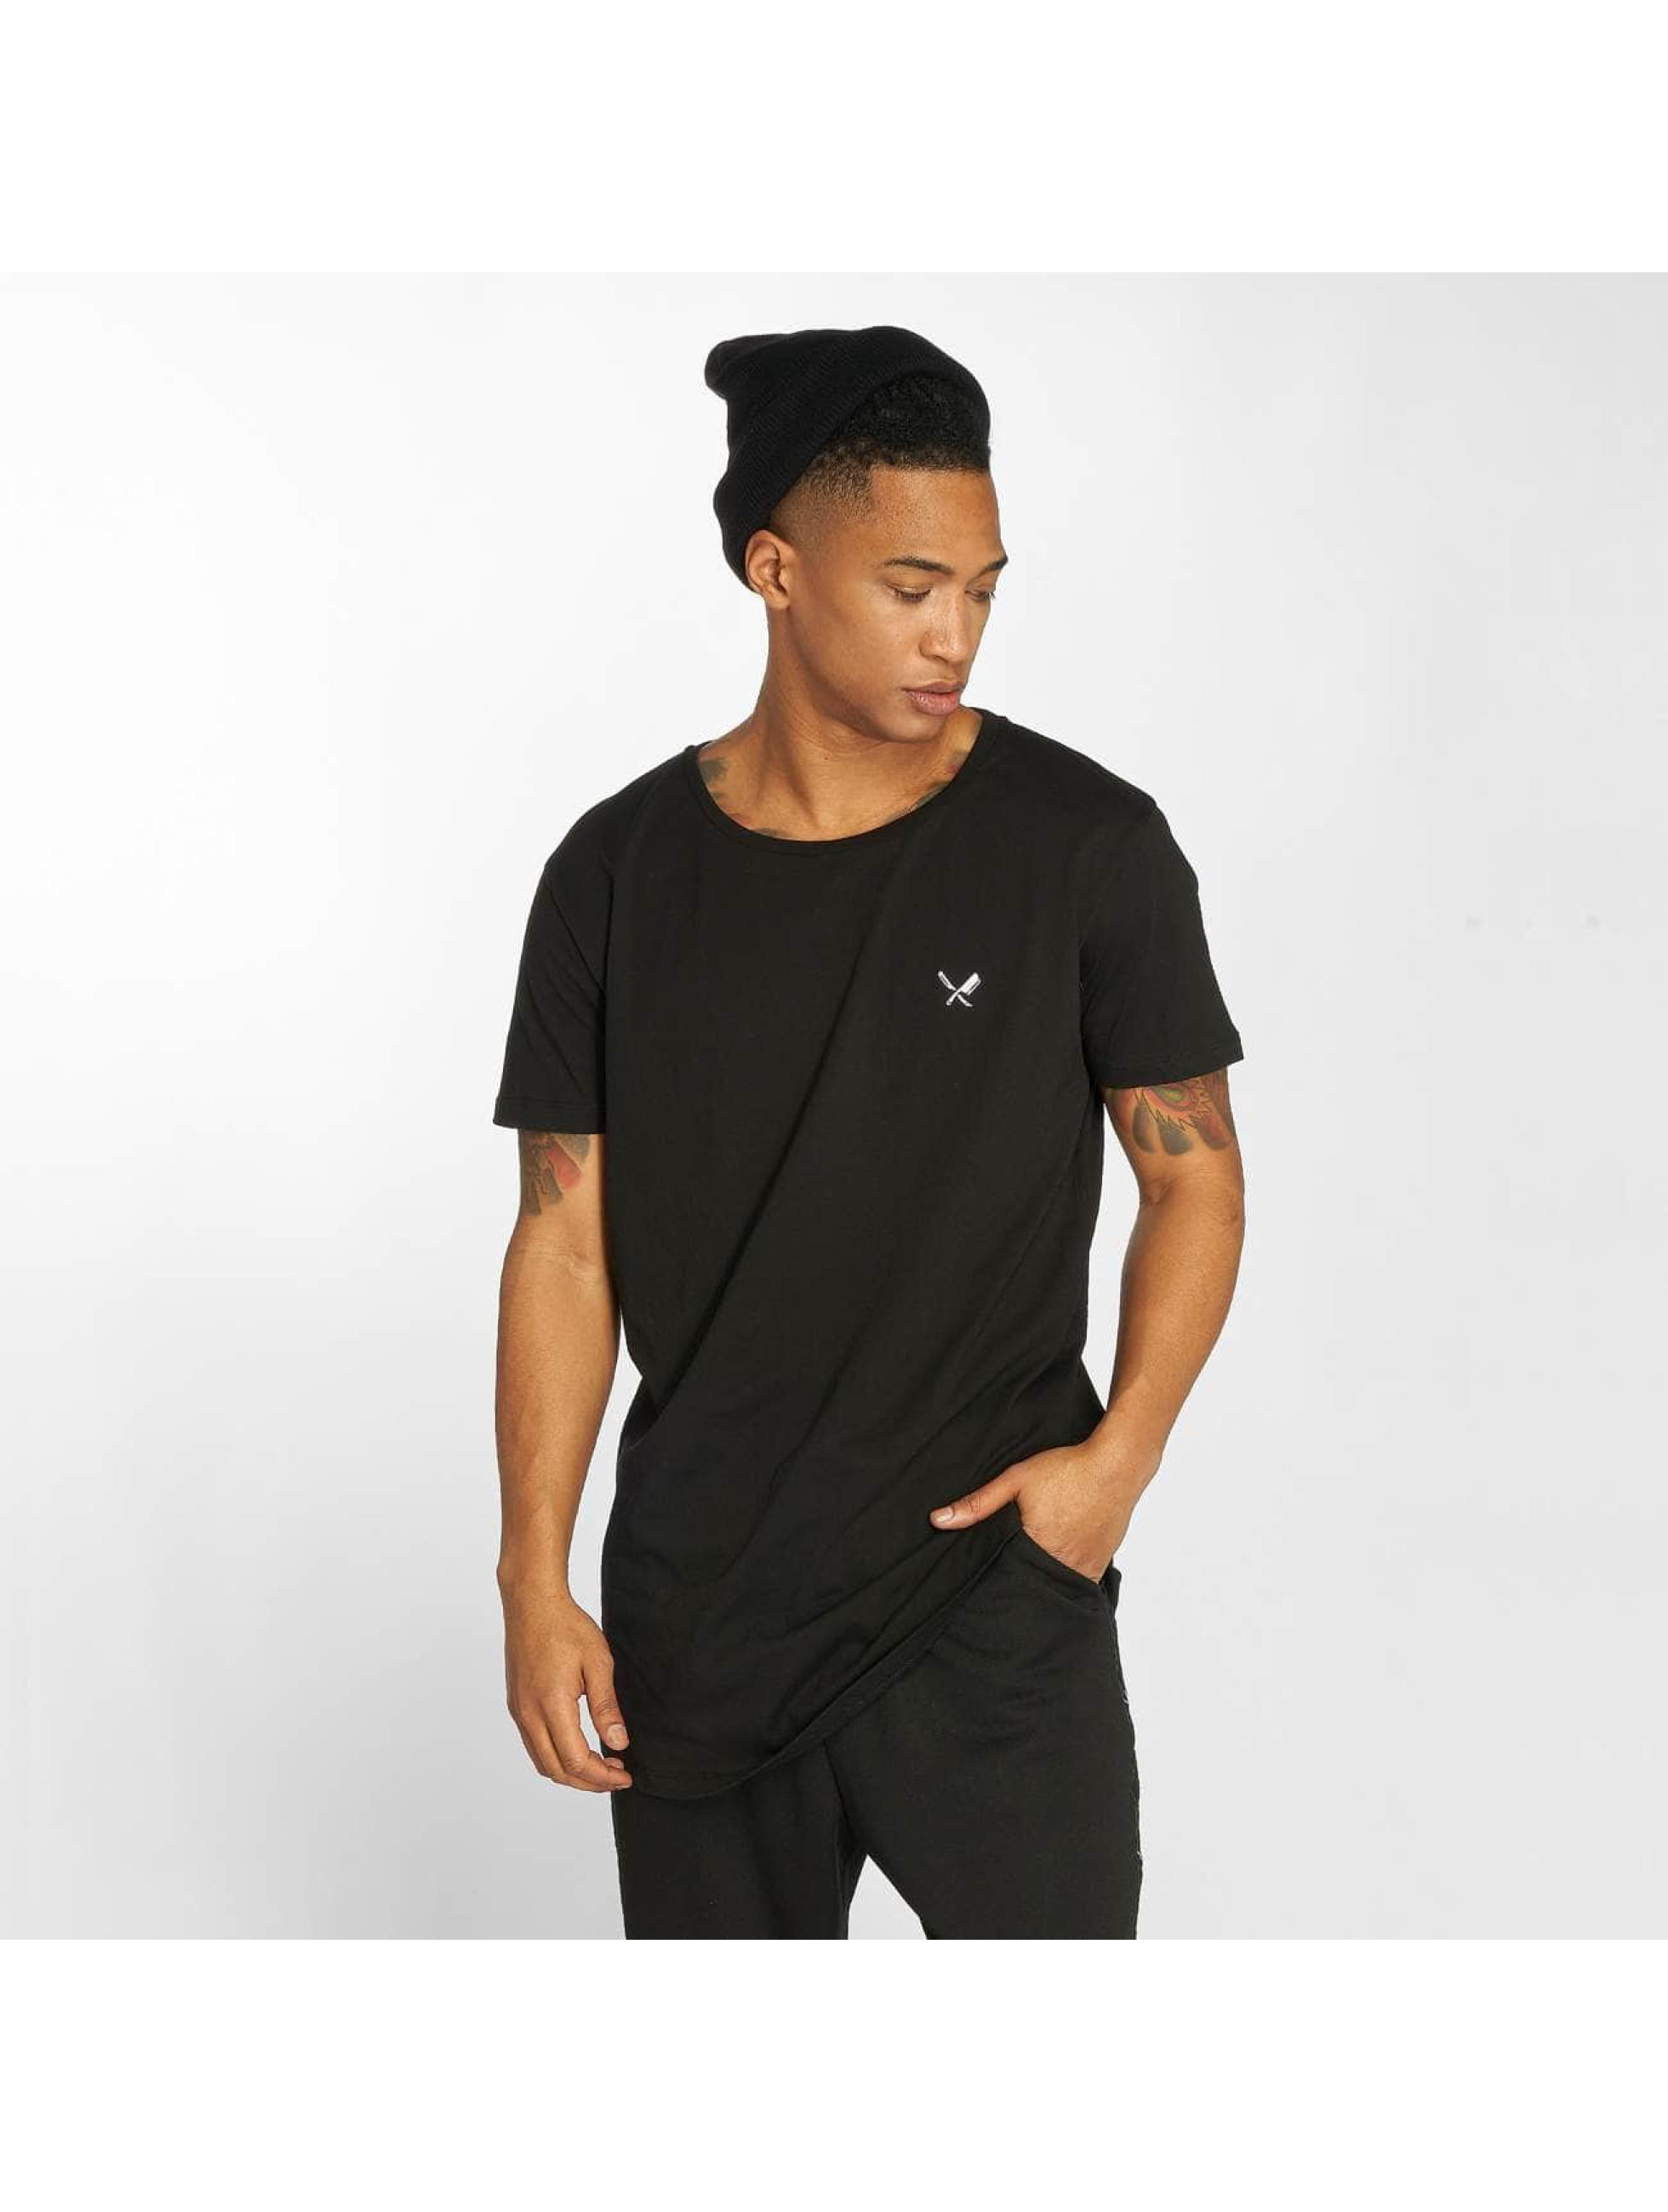 Distorted People T-Shirt Grand black